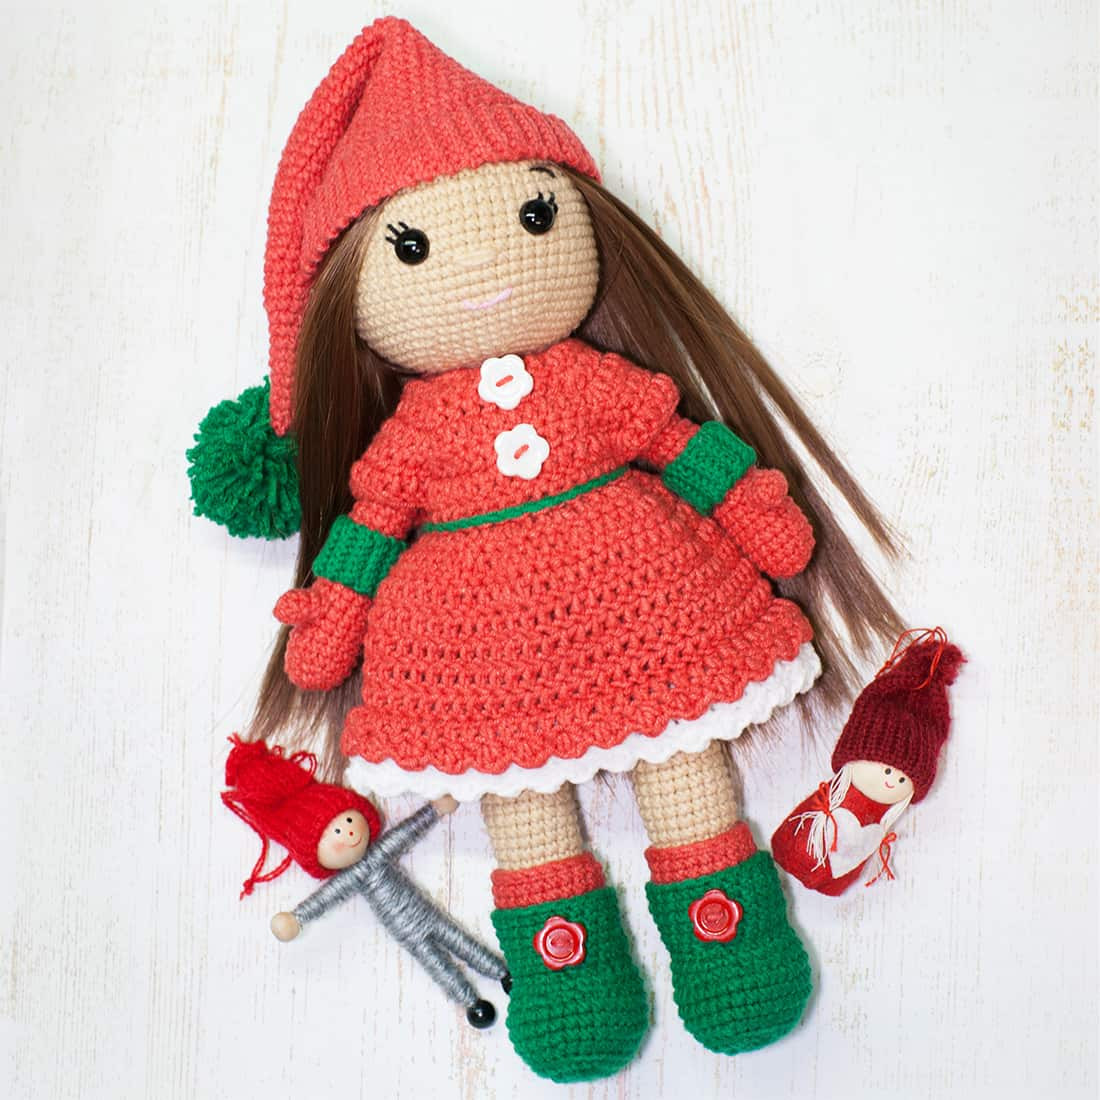 Doll Patterns New Christmas Doll Crochet Pattern Amigurumi today Of Doll Patterns Best Of Gingermelon Dolls My Felt Doll Knitted Outfit Patterns